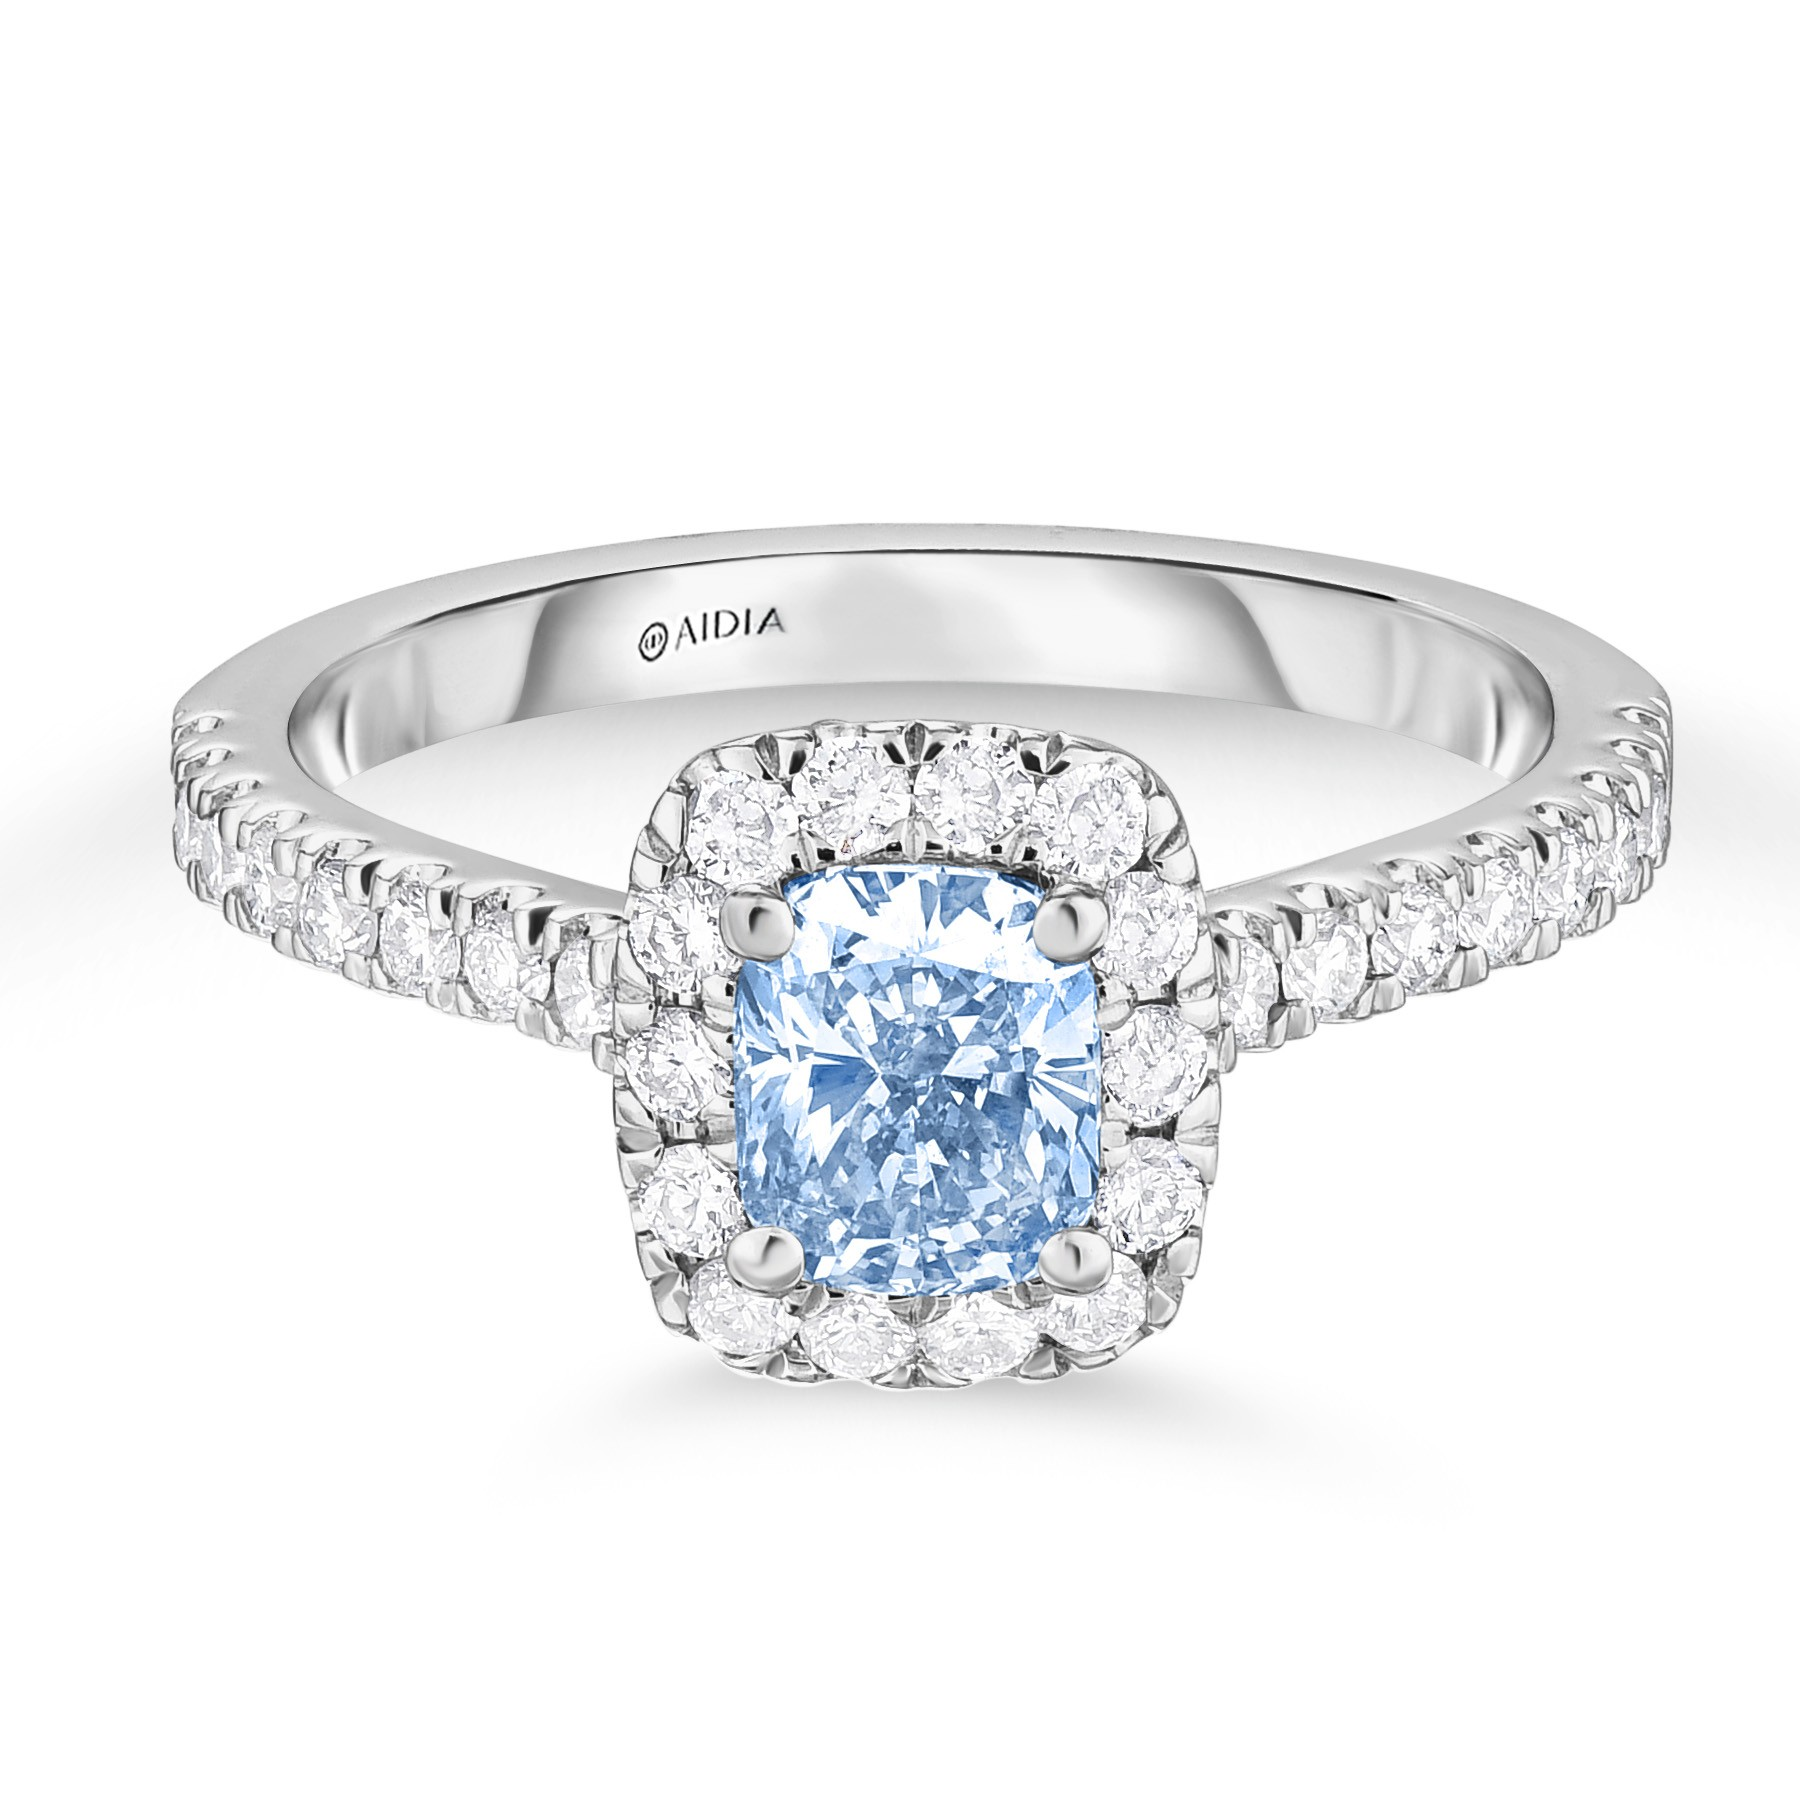 Surprise Diamond Halo Engagement Ring with a 0.77ct Fancy Light Blue, VS2 Cushion Cut Lab-Grown Diamond